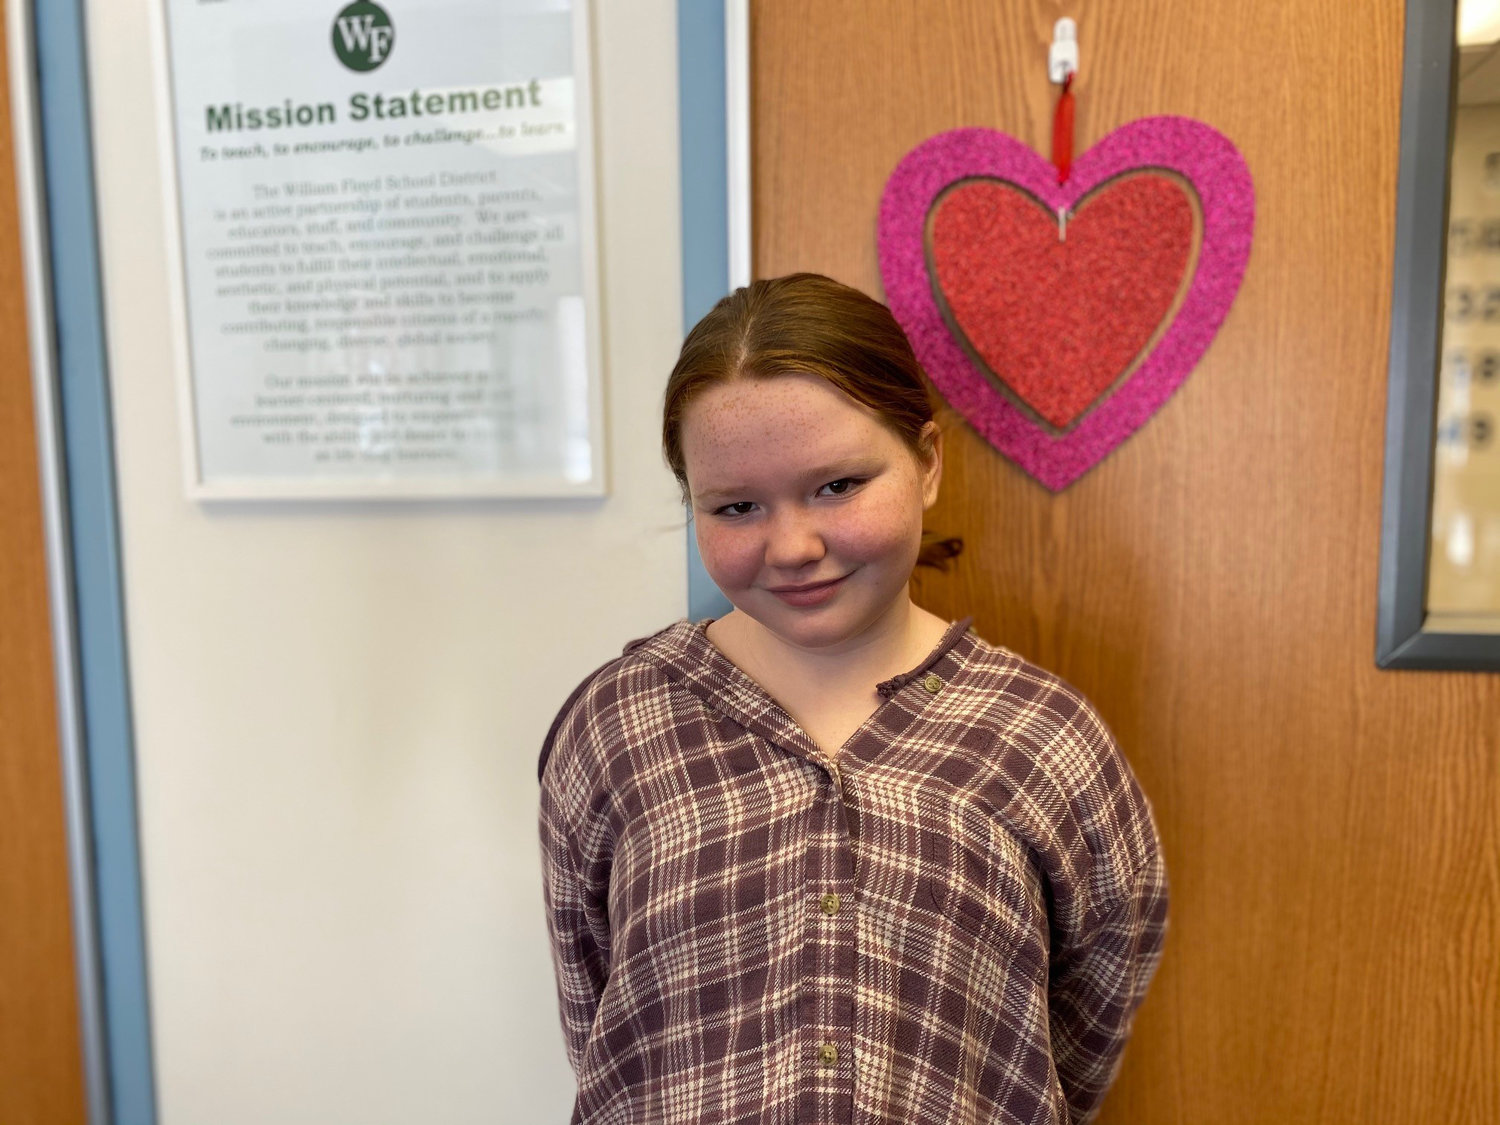 Caitlyn Michiels, fifth-grader at Moriches Elementary School in the William Floyd School District.